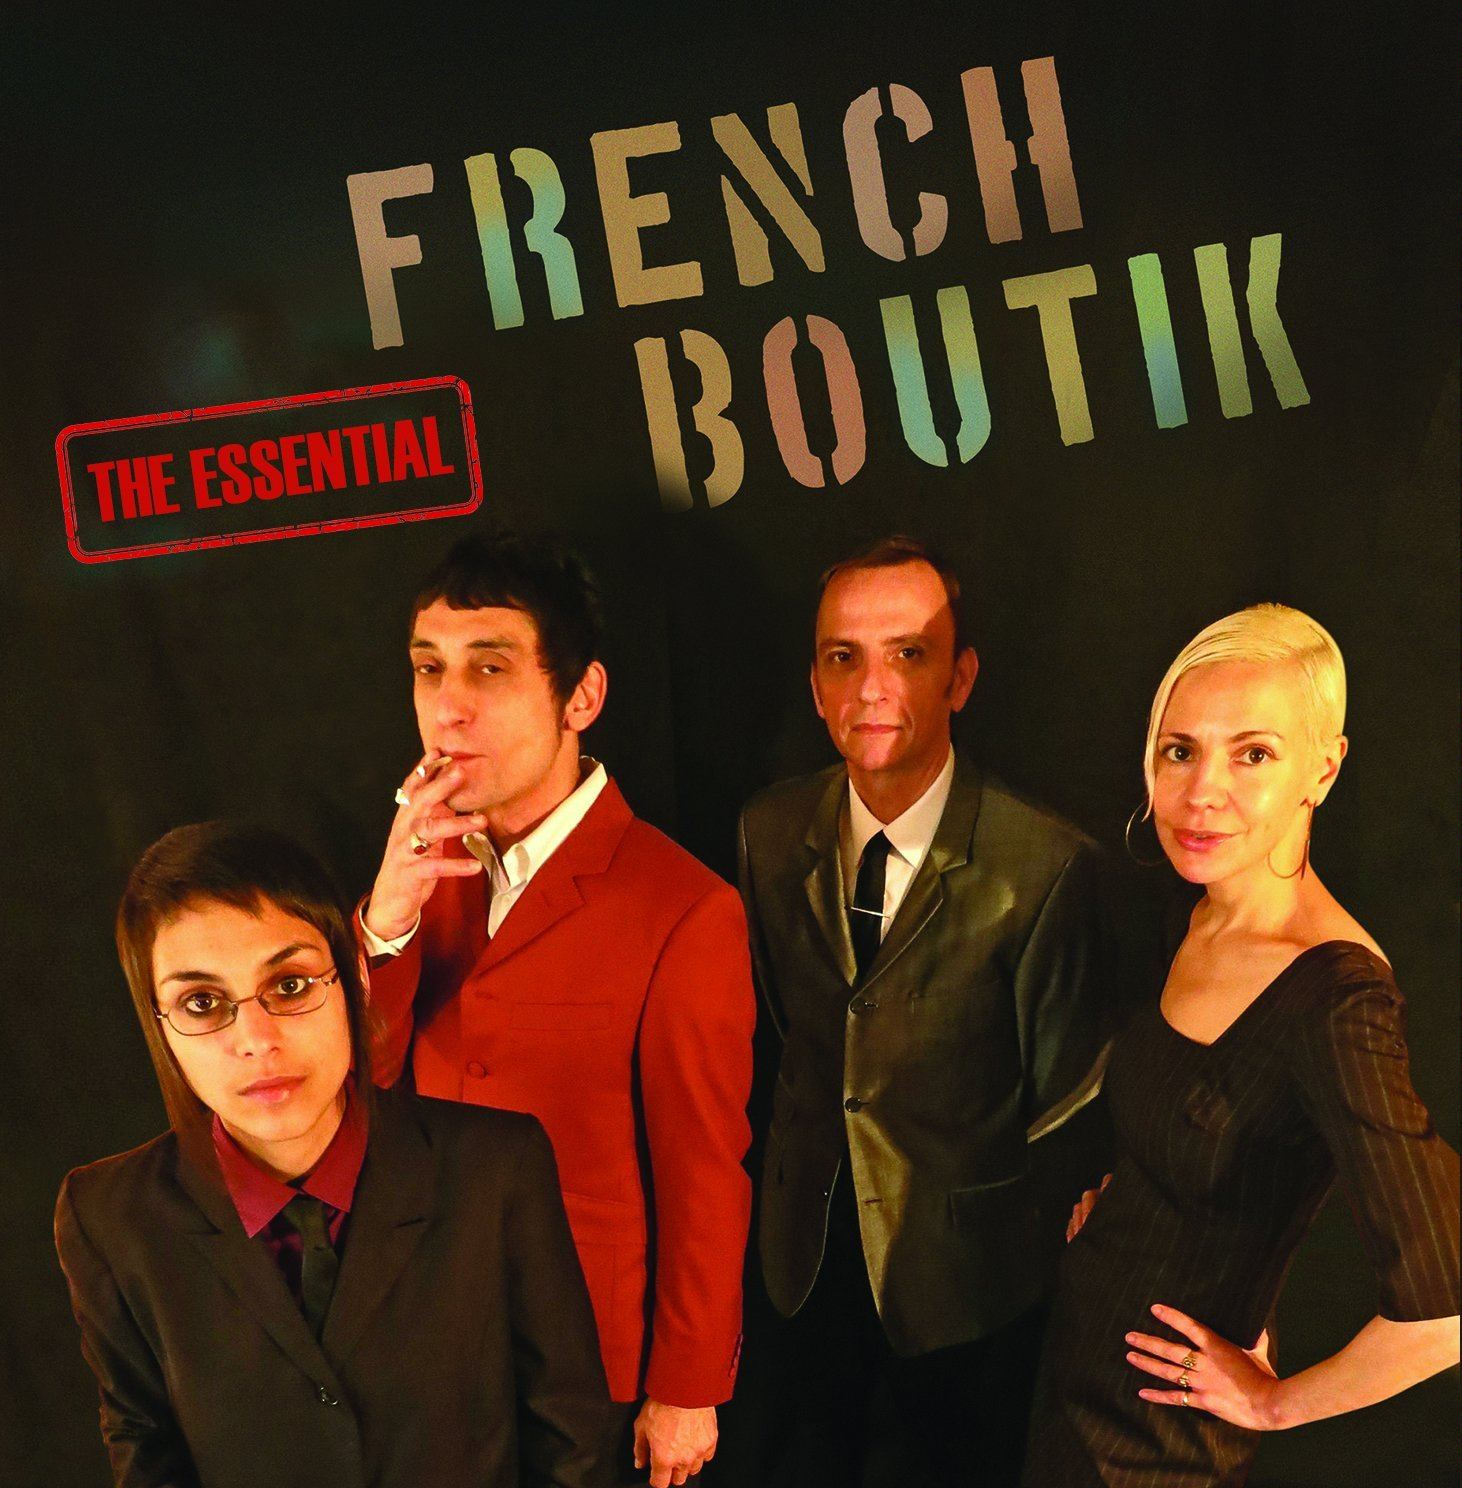 FRENCH BOUTIK The Essential CD